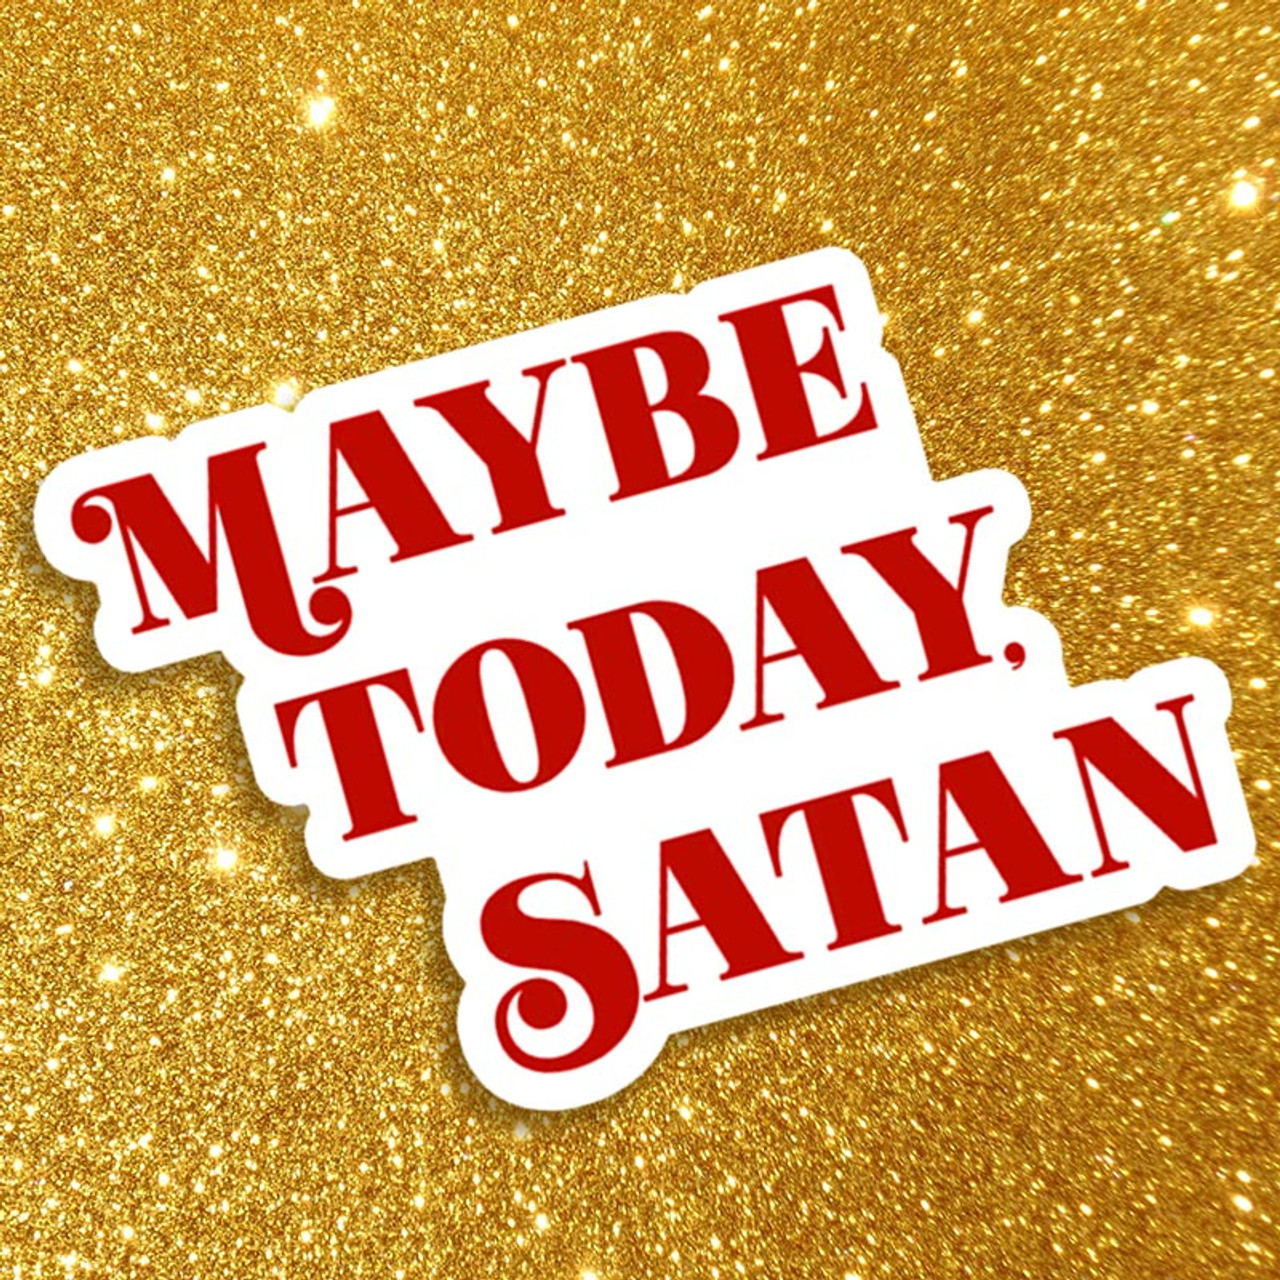 Usually we would say not today... but with 2020... Maybe Today, Satan!